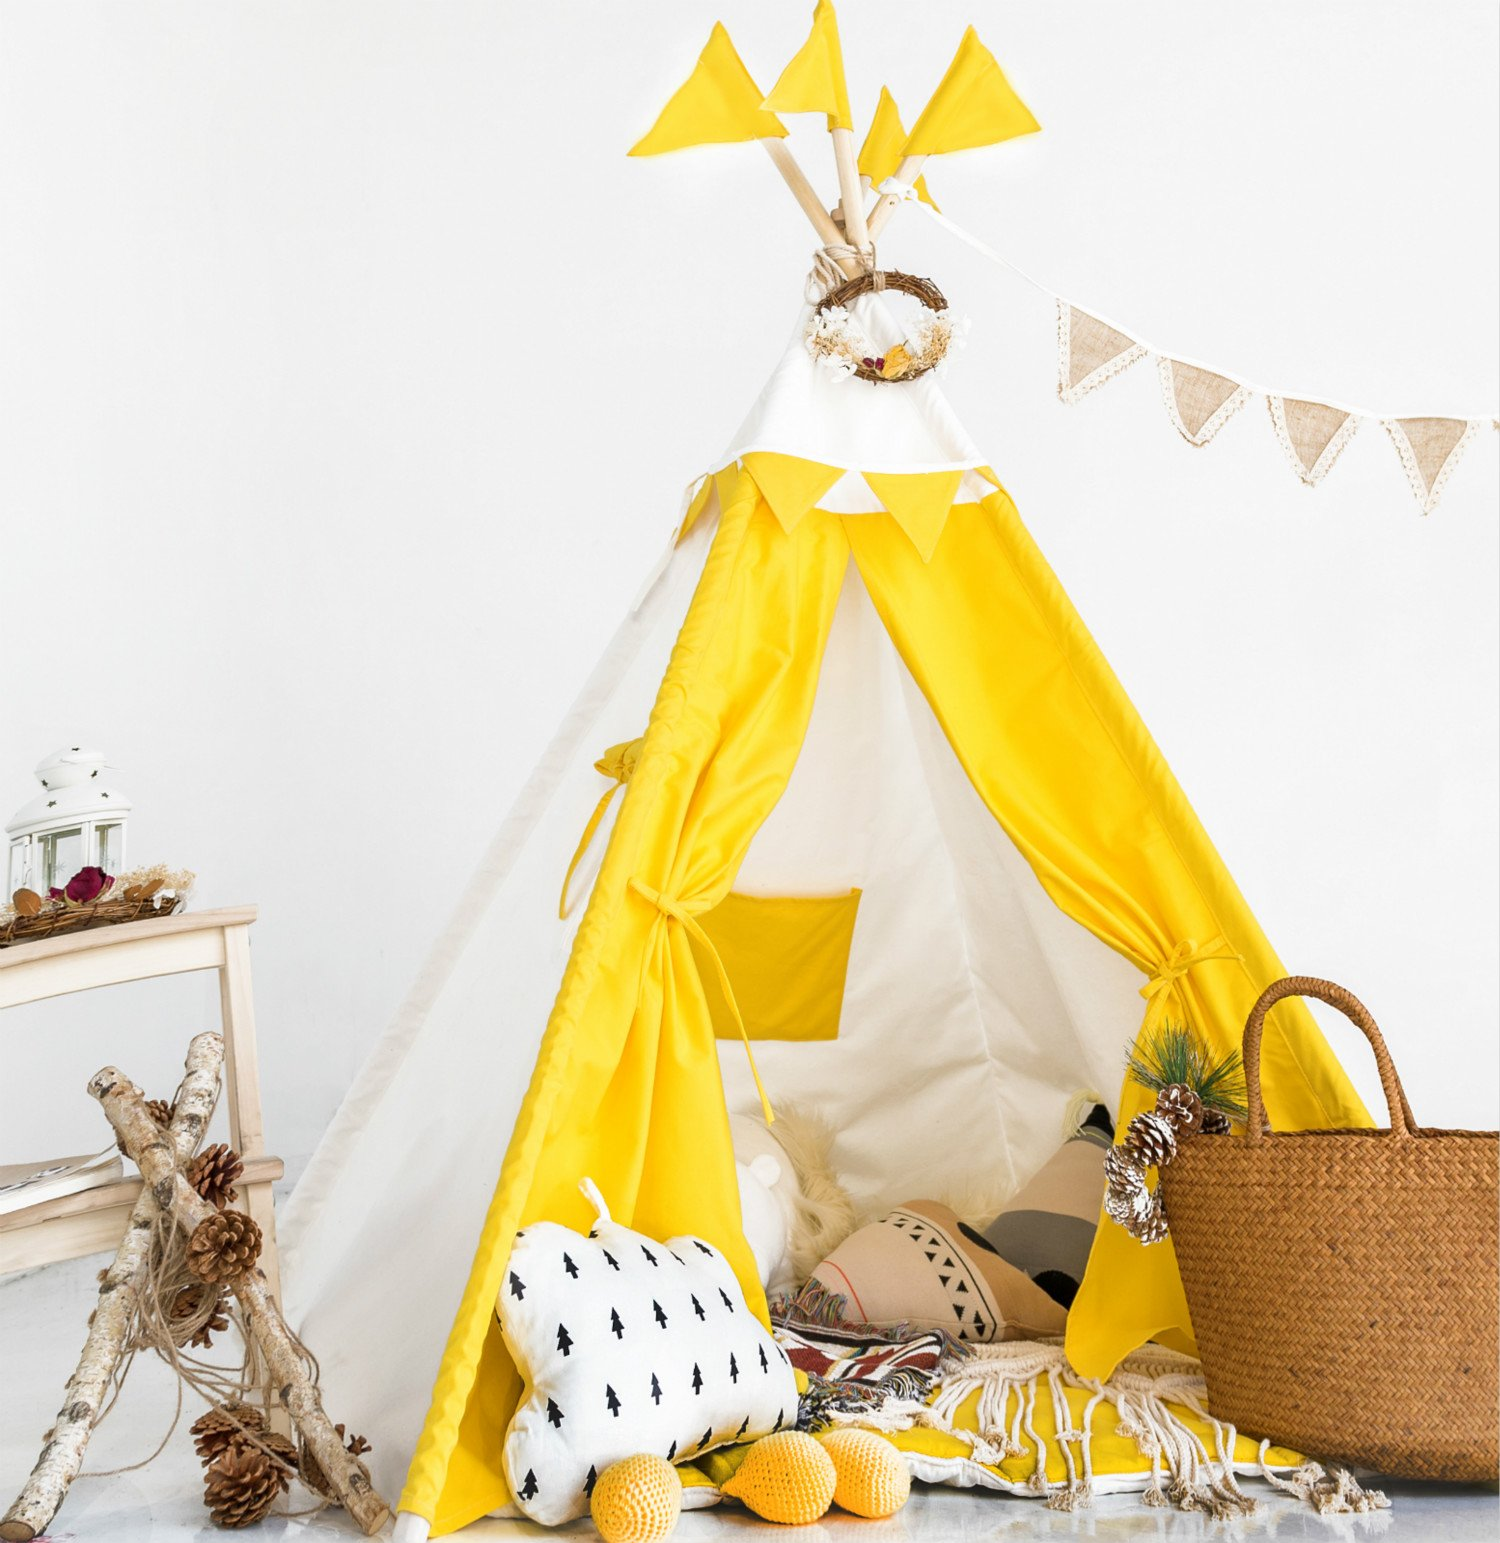 HAN-MM Kids Teepee Tent Set With Mat - 4 Wooden Poles Indian Playhouse for Children for Indoor or Outdoor Play. Durable Cotton Canvas Fabric.No Trouble to Choose Another Mat.Yellow Splice by HAN-MM